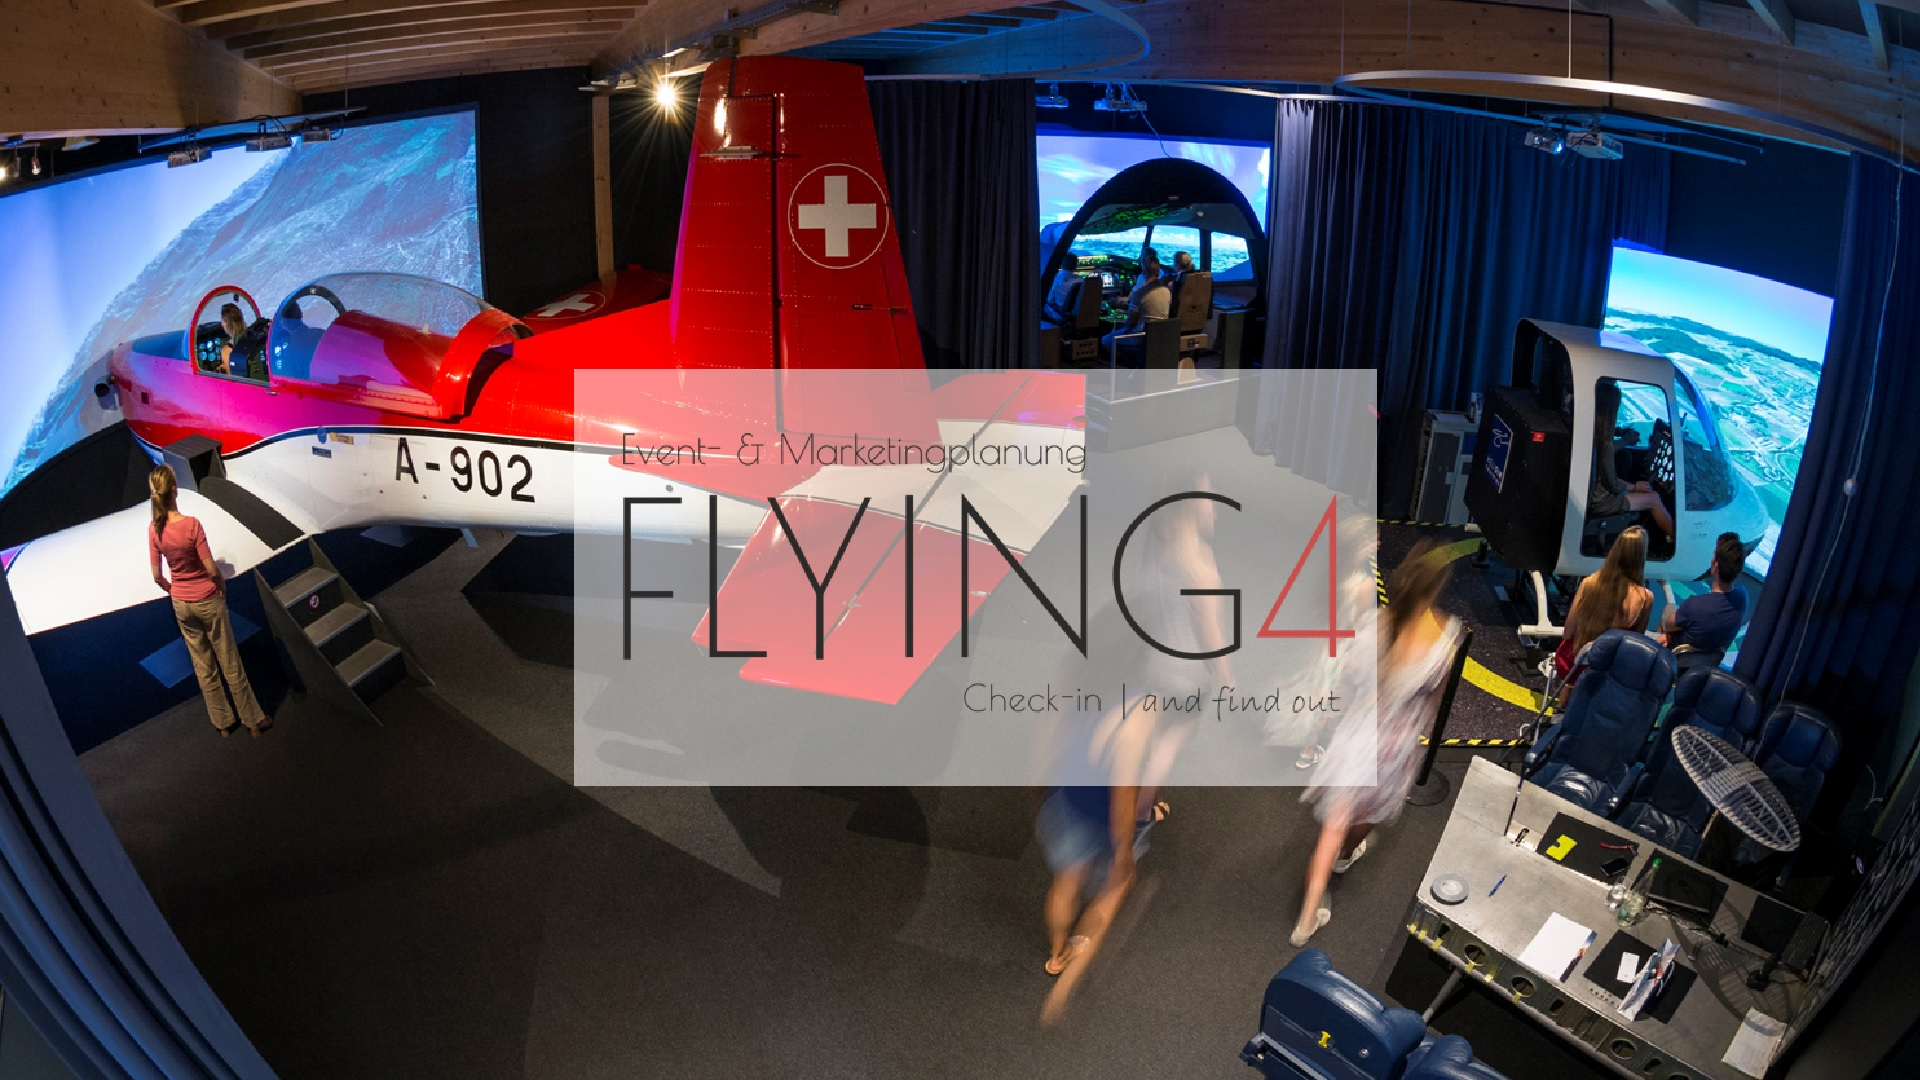 Flying 4 - Die Eventagentur